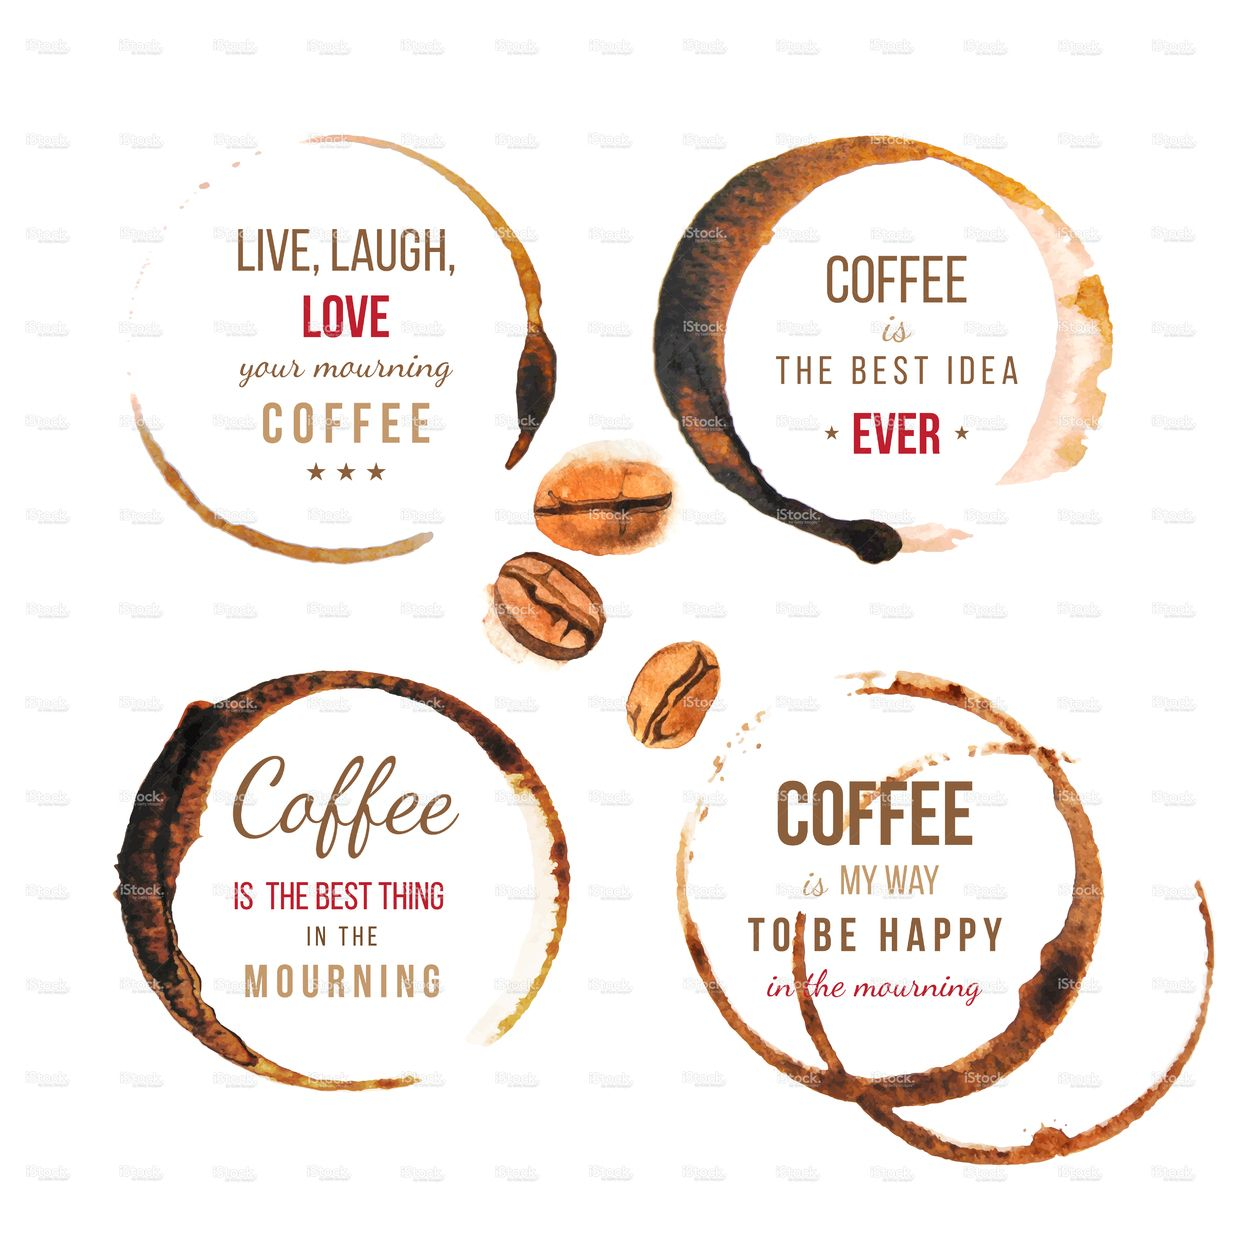 Coffee Stains With Type Designs About Coffee デザイン 影像 創意